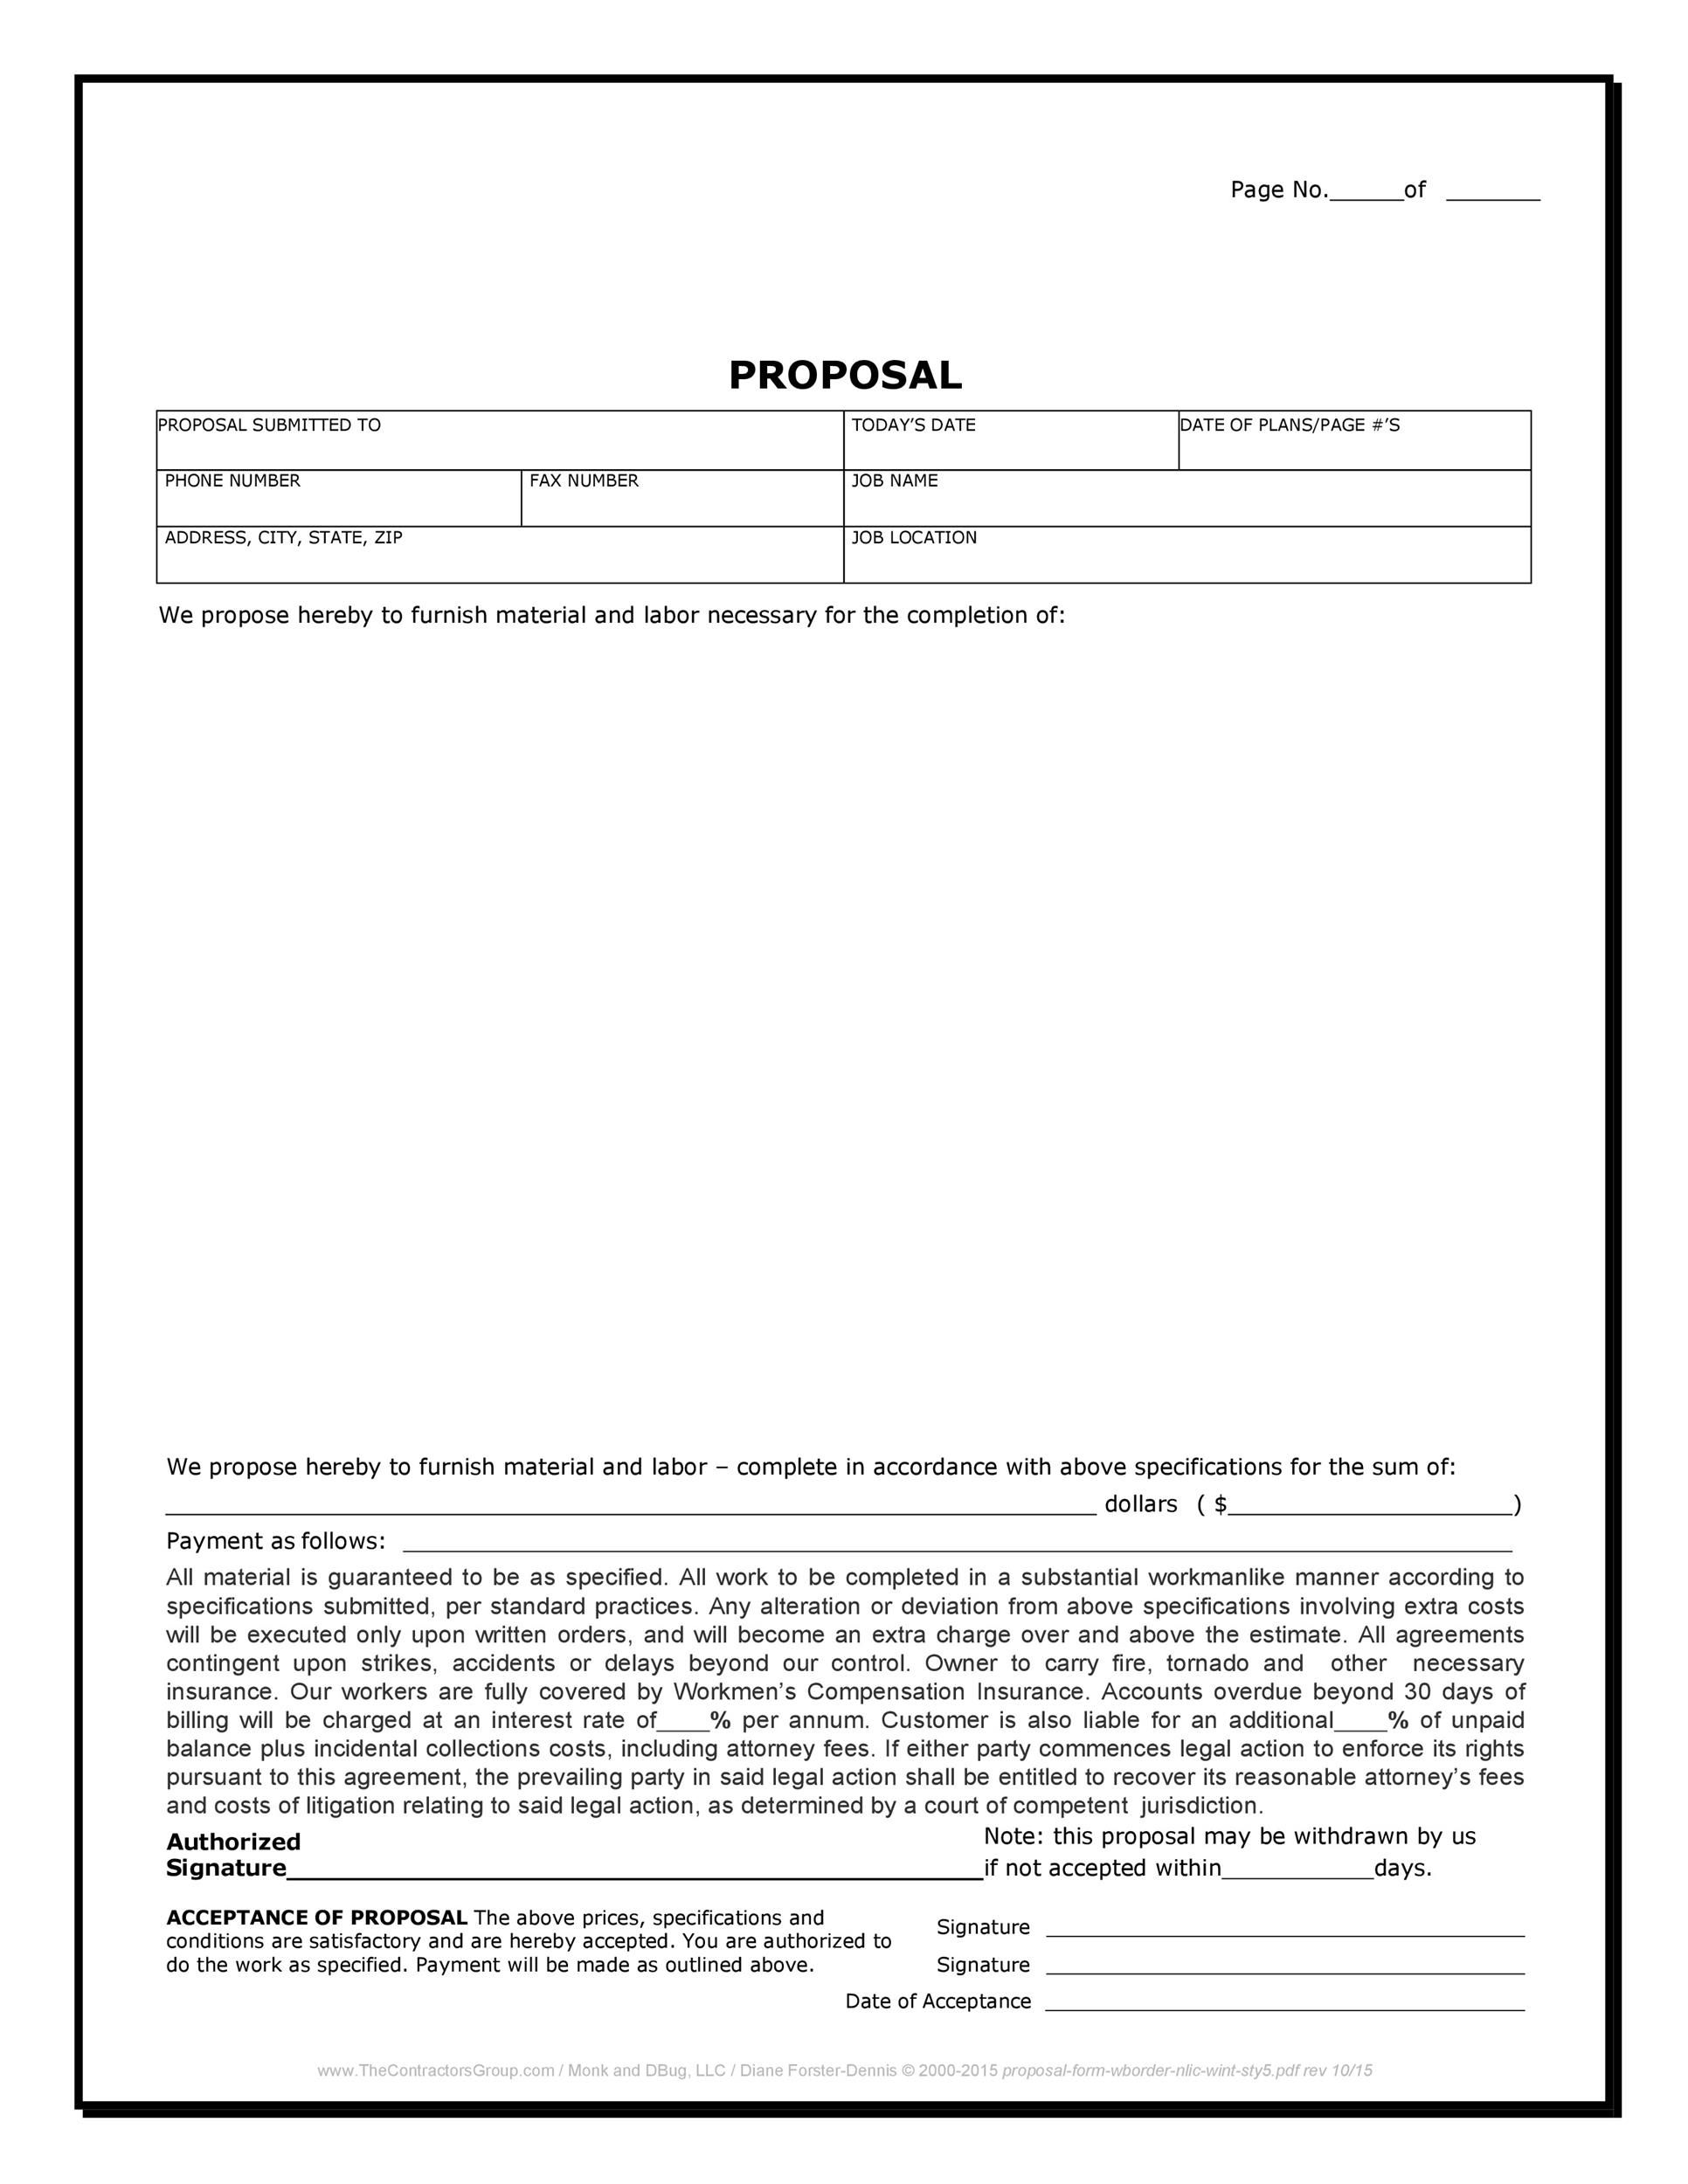 007 Awful Free Construction Proposal Template Idea  Bid Contractor WordFull